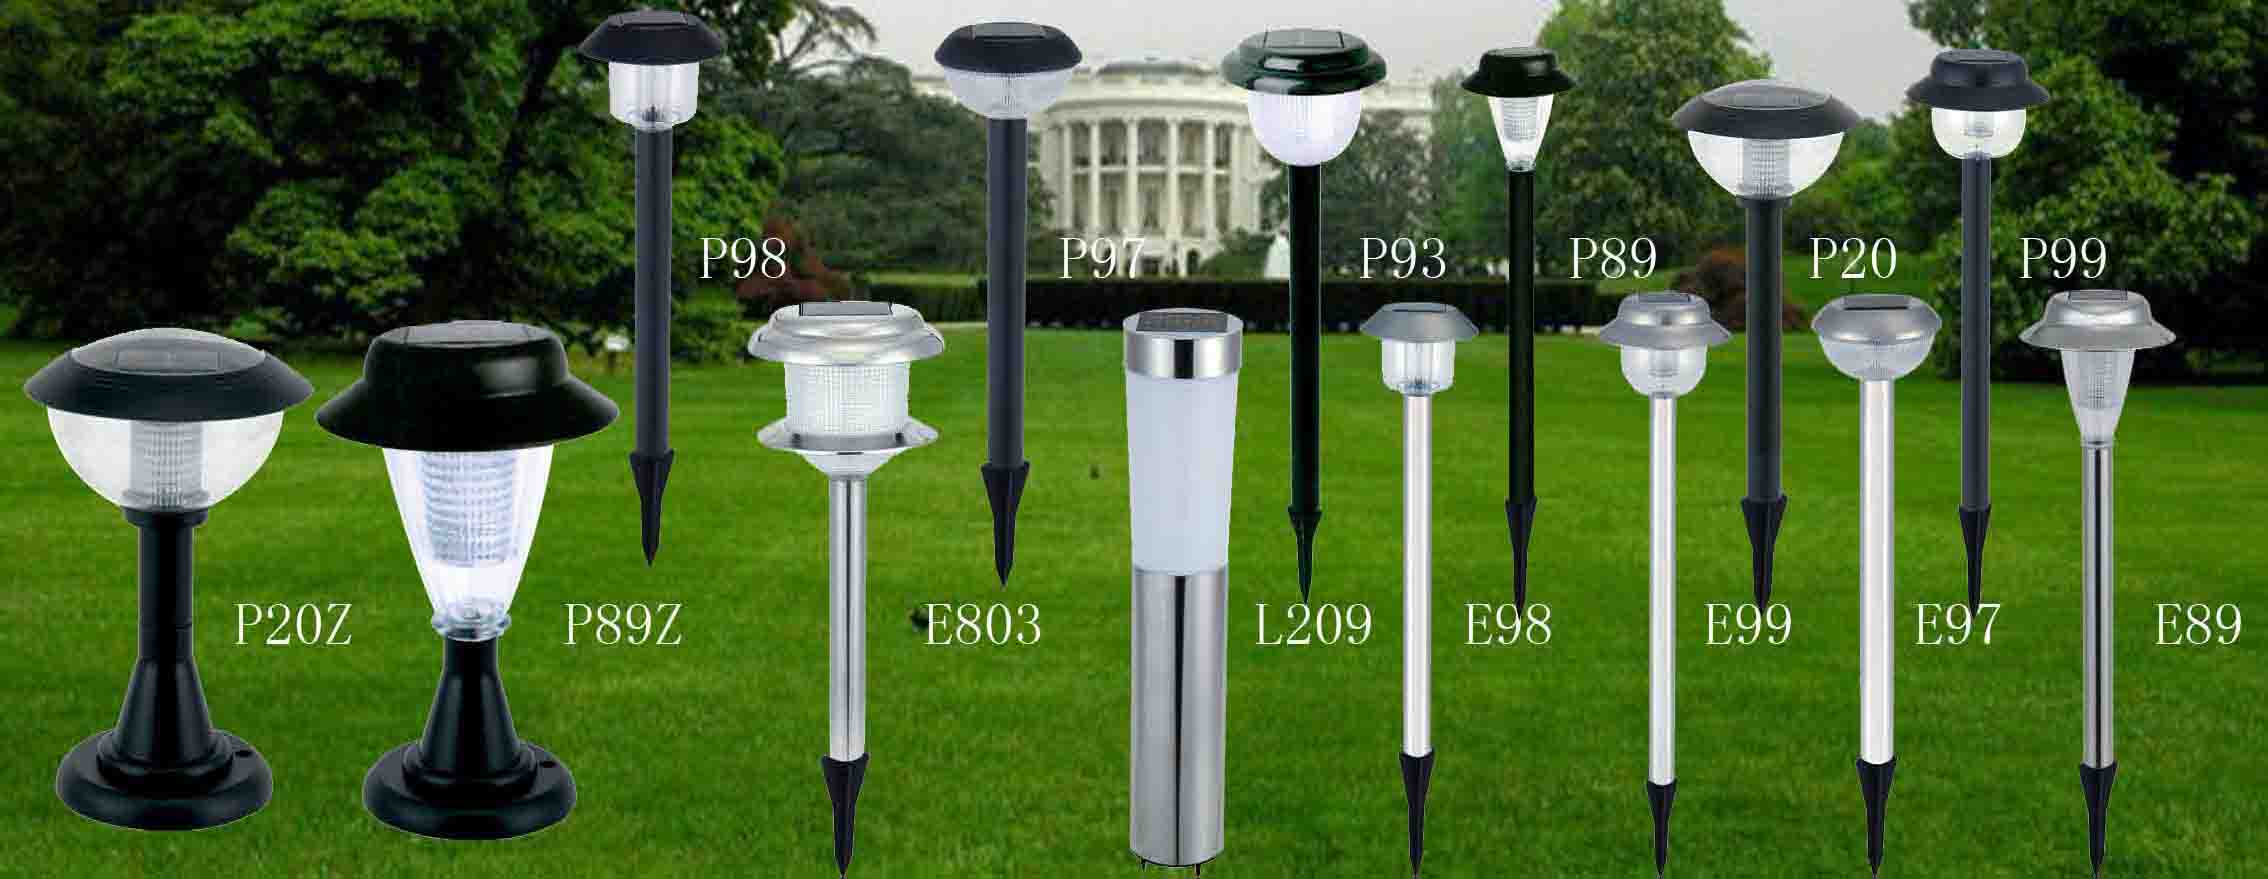 China Manufacturer With Main Products Solar Garden Lights Lawn Emergency Camping Flashlights Searchlights Maintenance Free